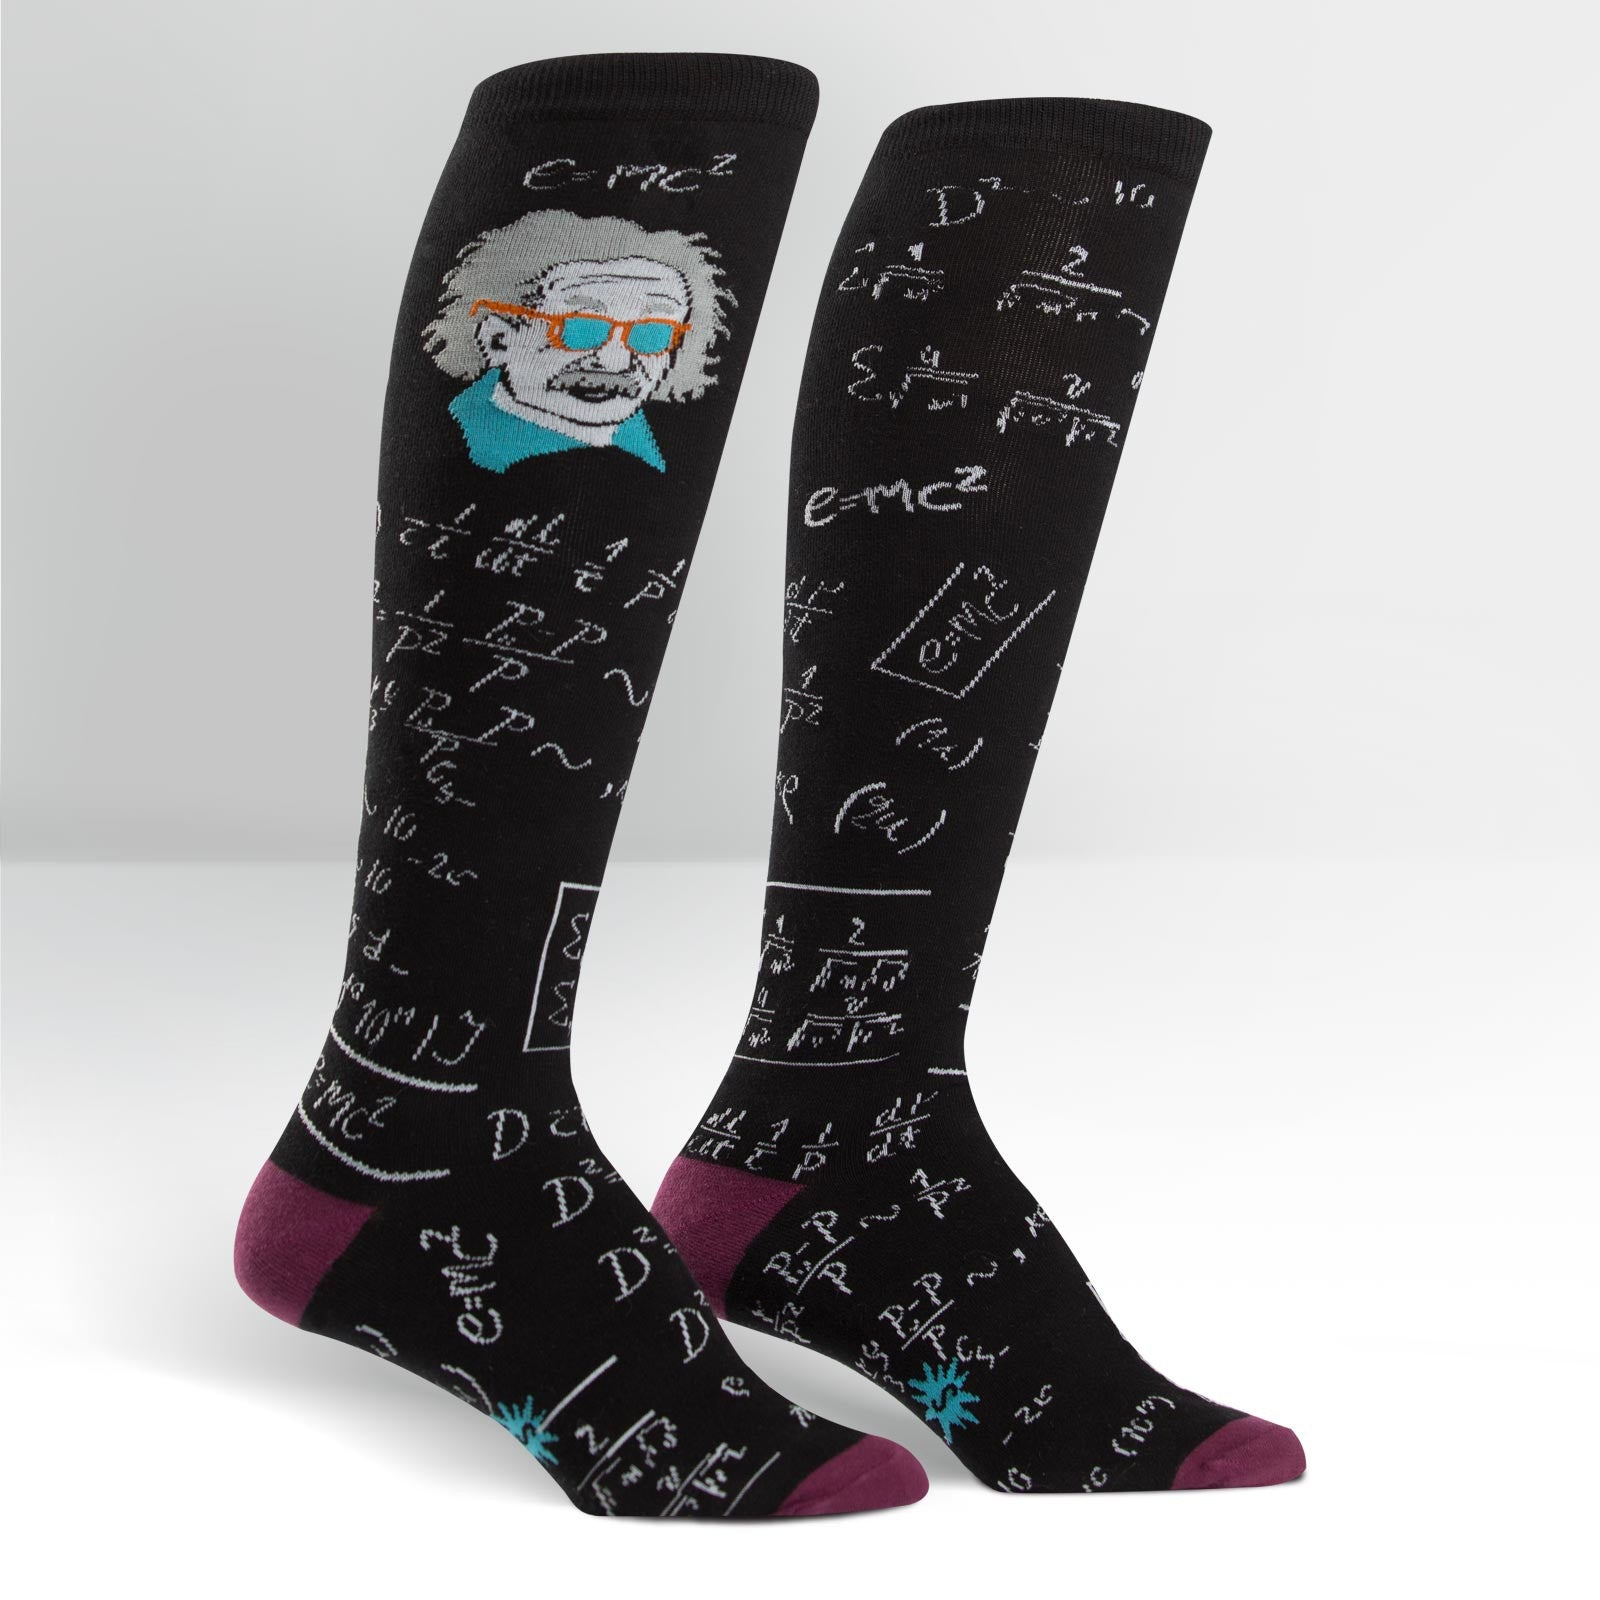 Sock It To Me Einstein Knee Socks aka Relatively Cool